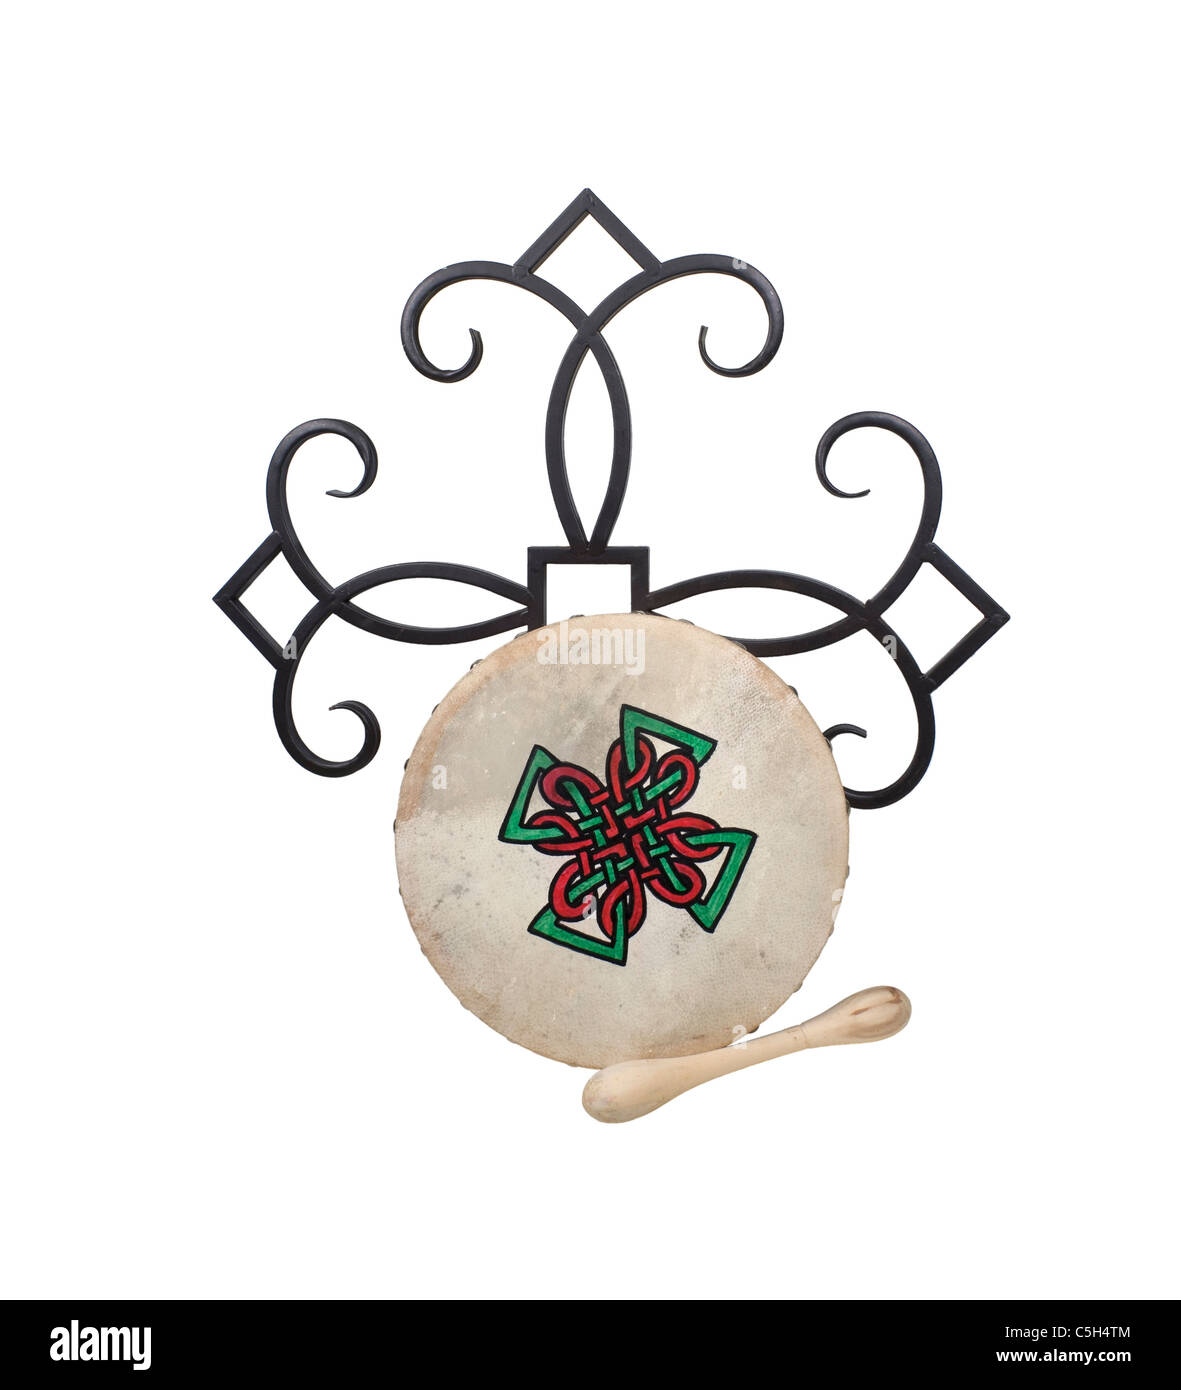 Celtic Bodhran Beater Drum with stretched skin over a frame - path included - Stock Image